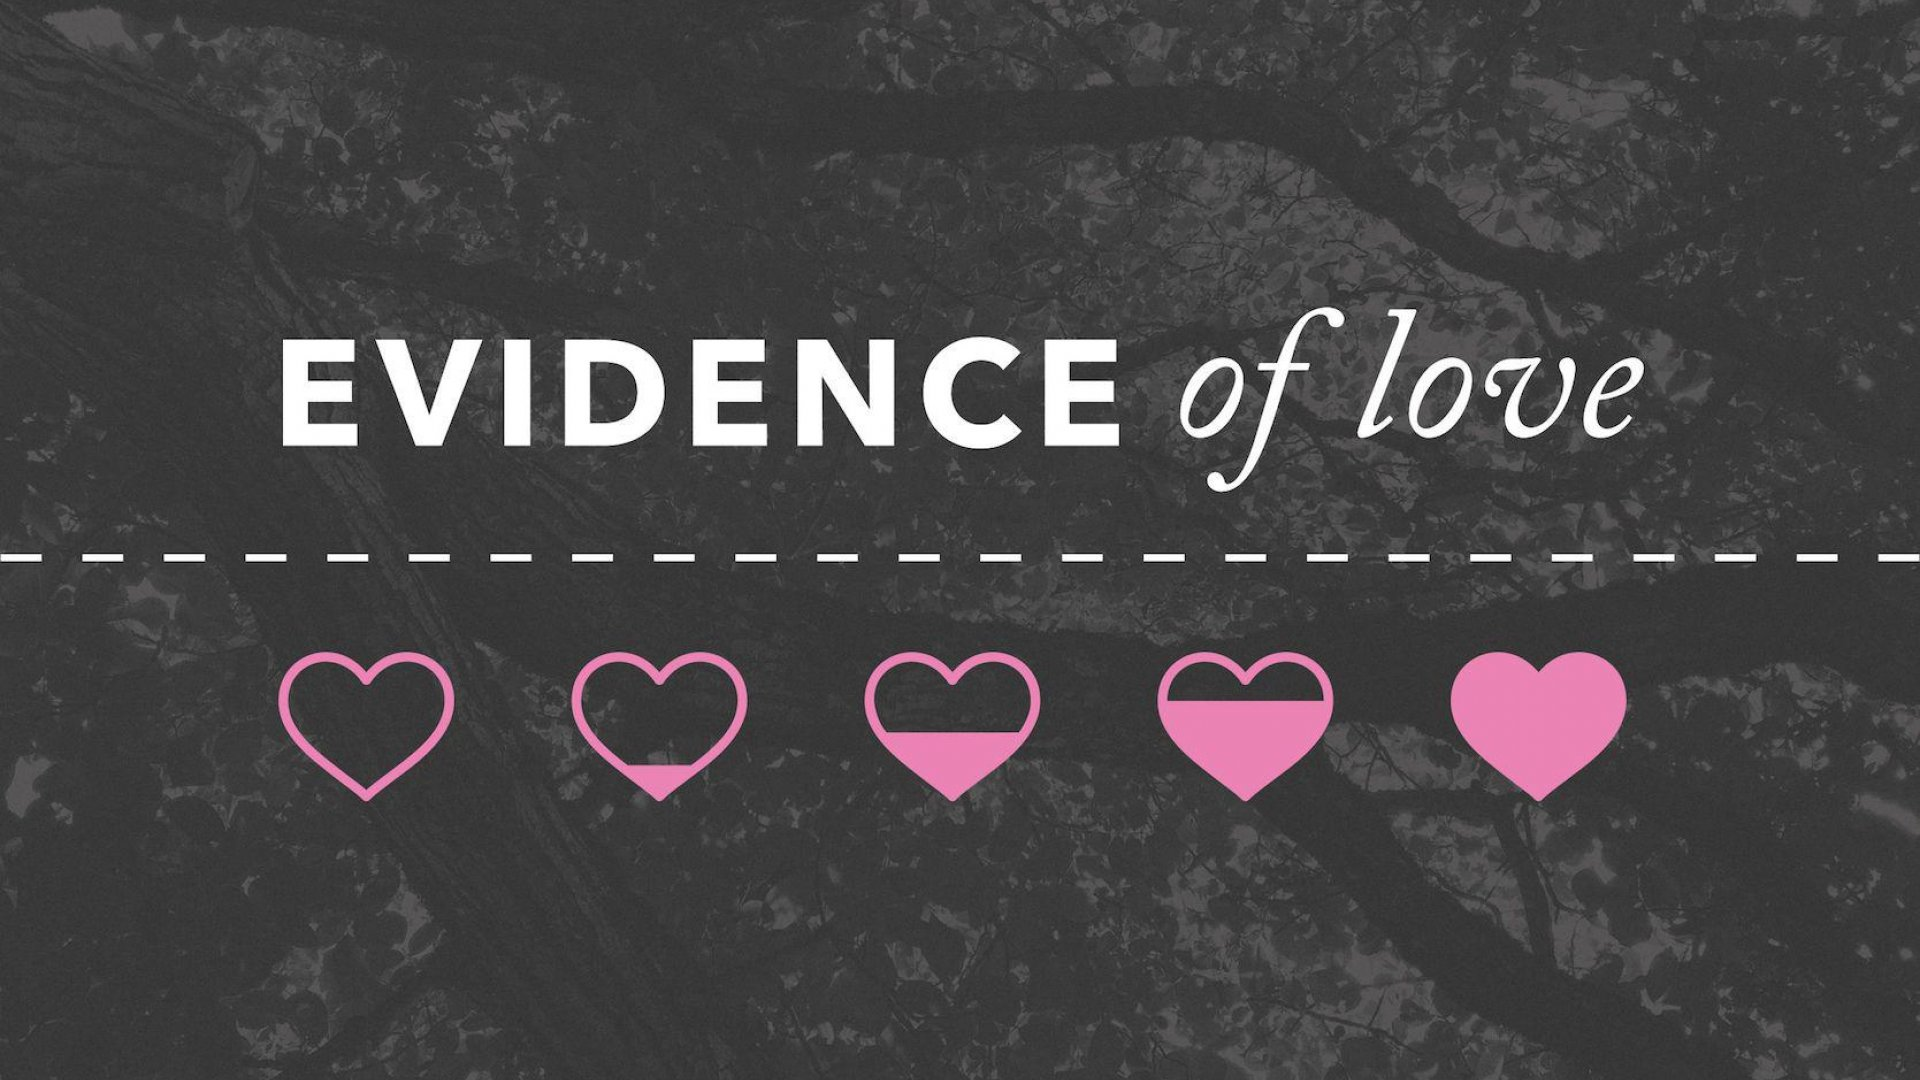 Teaching artwork for Evidence of Love